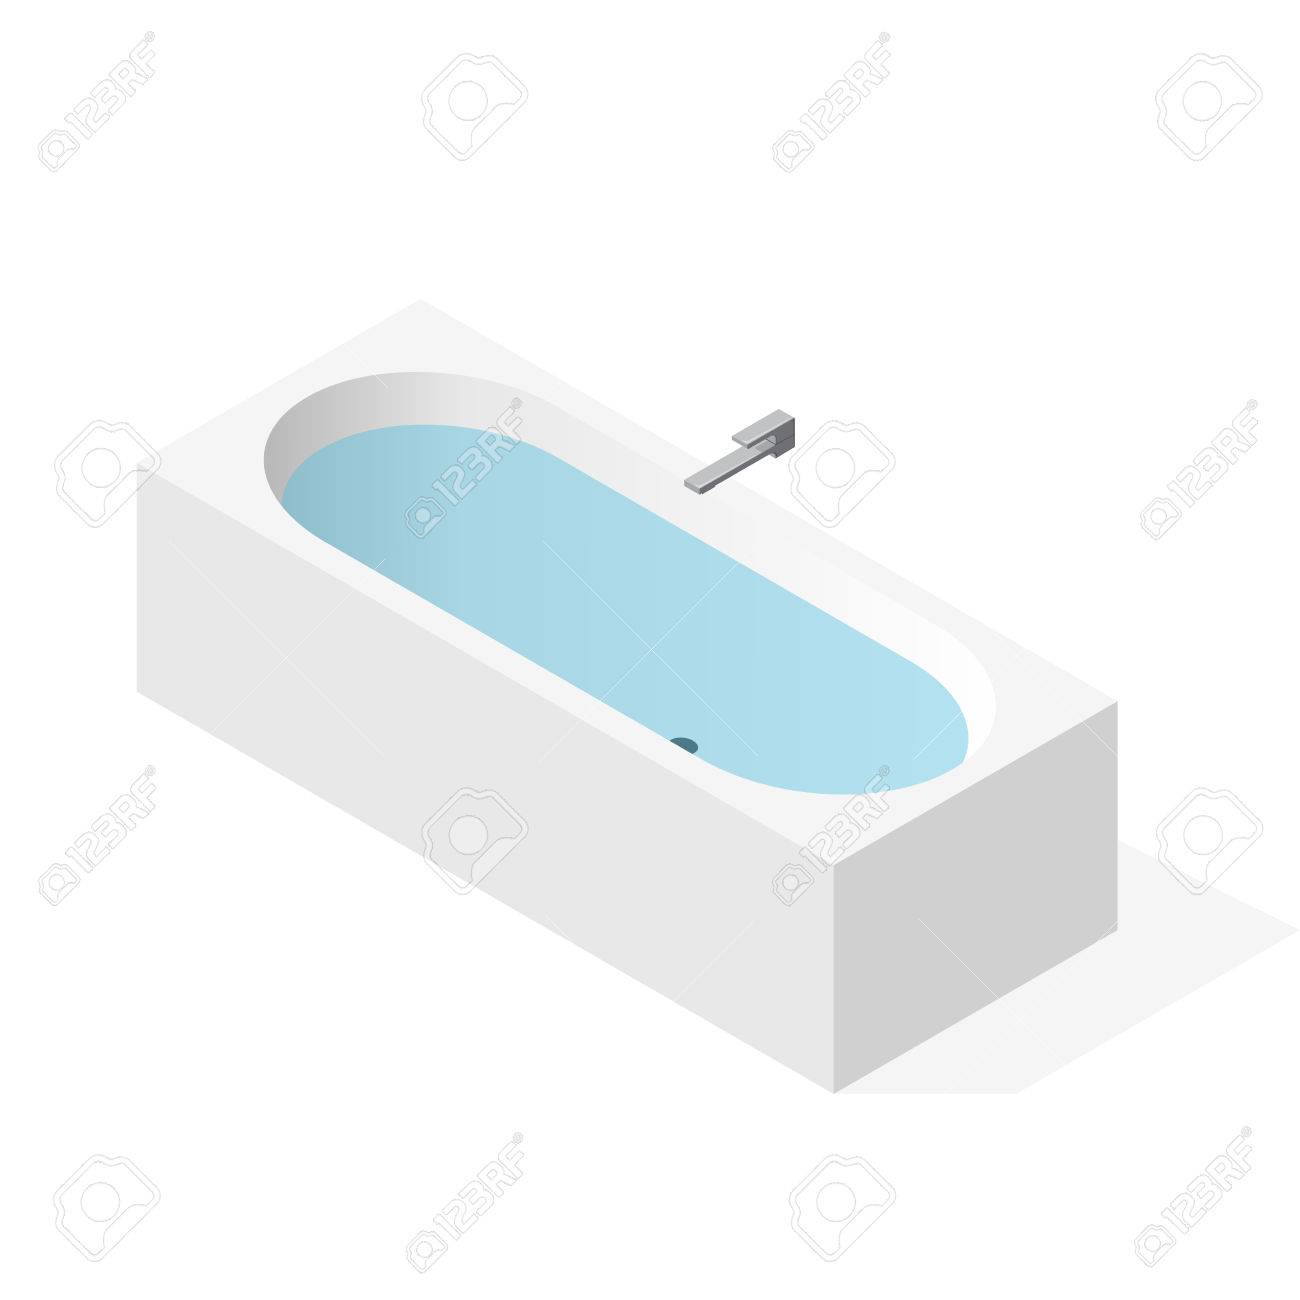 Modern Bathtub Filled With Water. Vector Bath Tub In Isometric ...